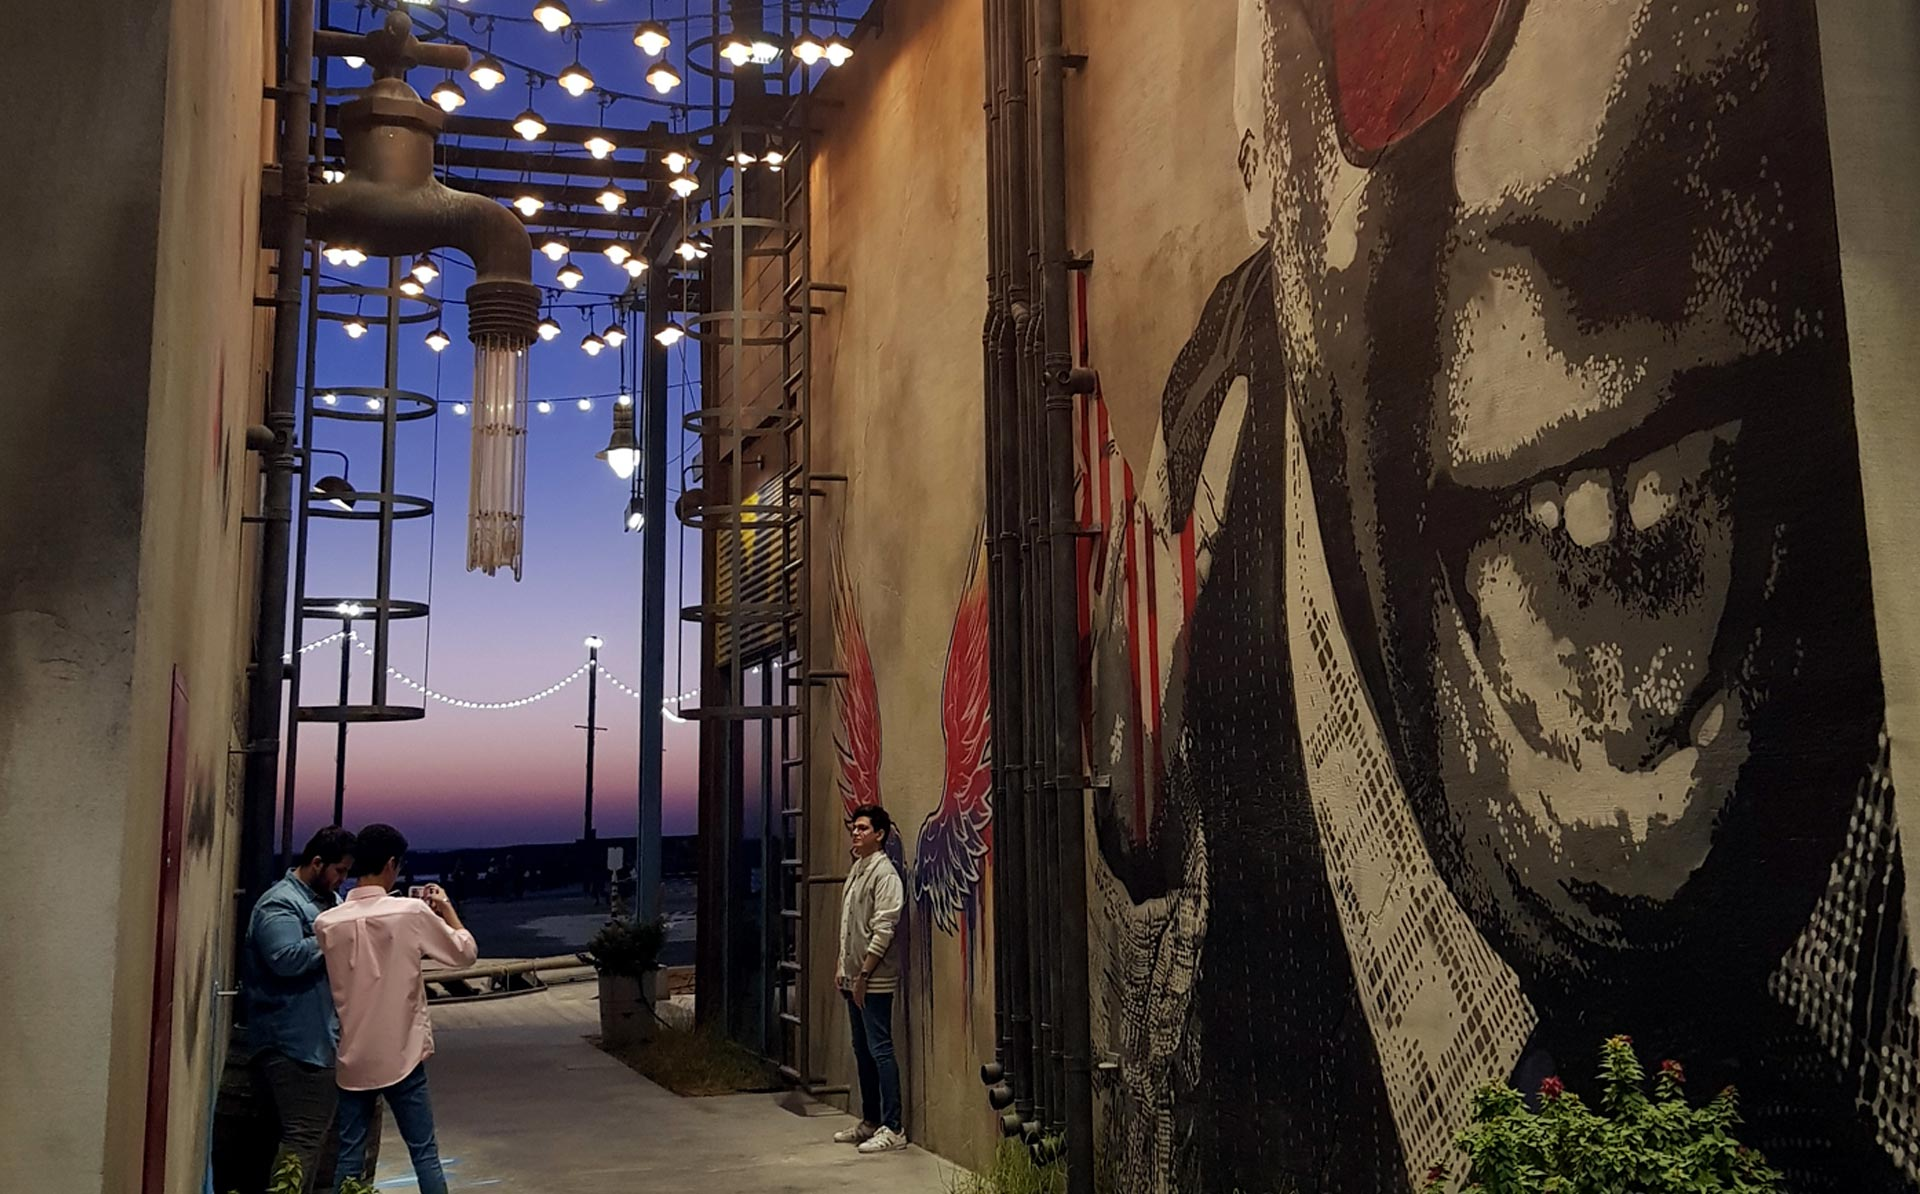 People taking photos at La Mer, Dubai at sunset with graffiti art on the wall.